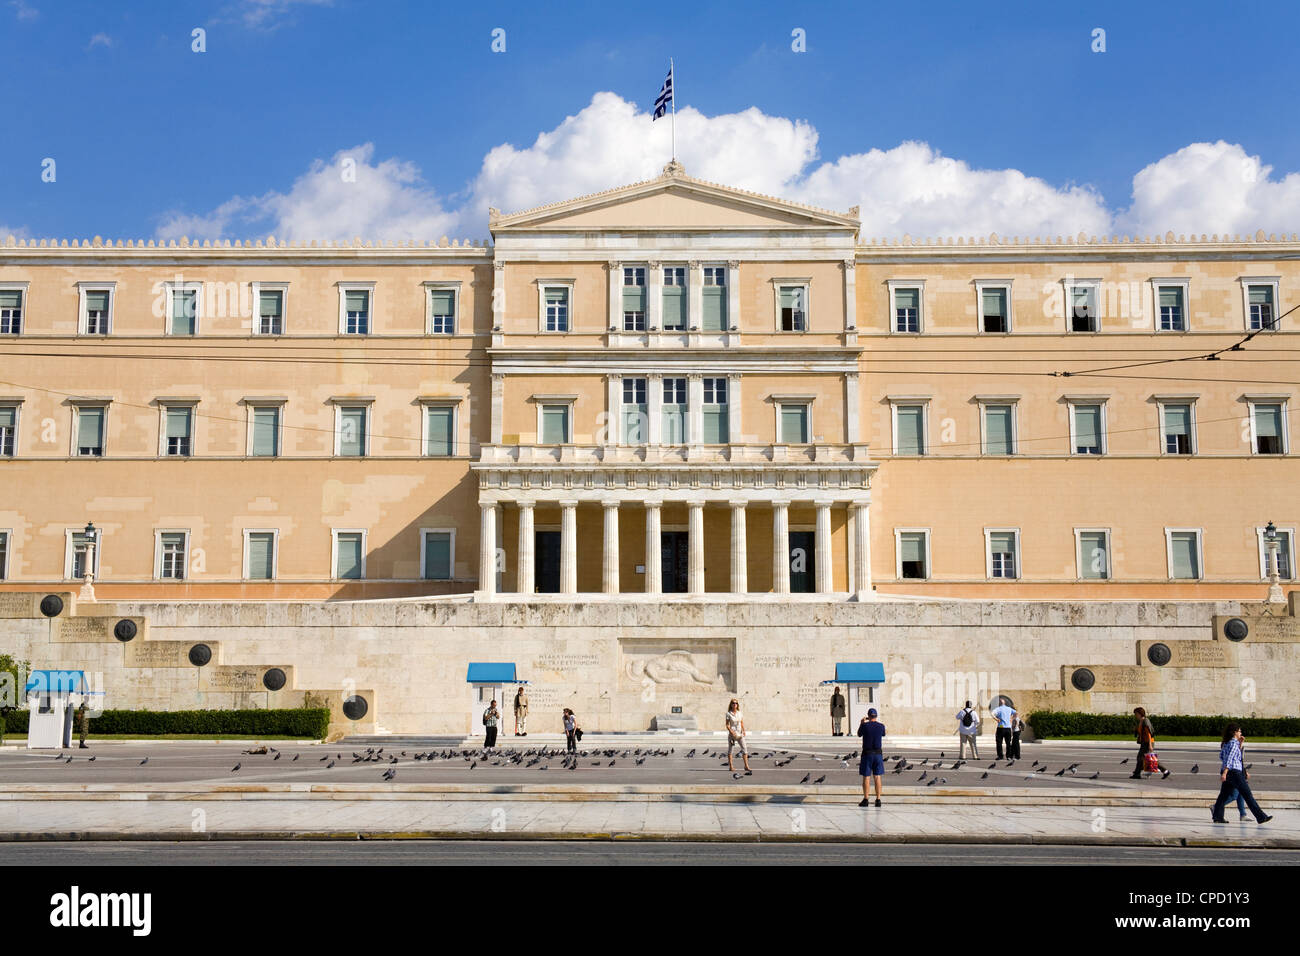 Parliament Building, Athens, Greece, Europe - Stock Image